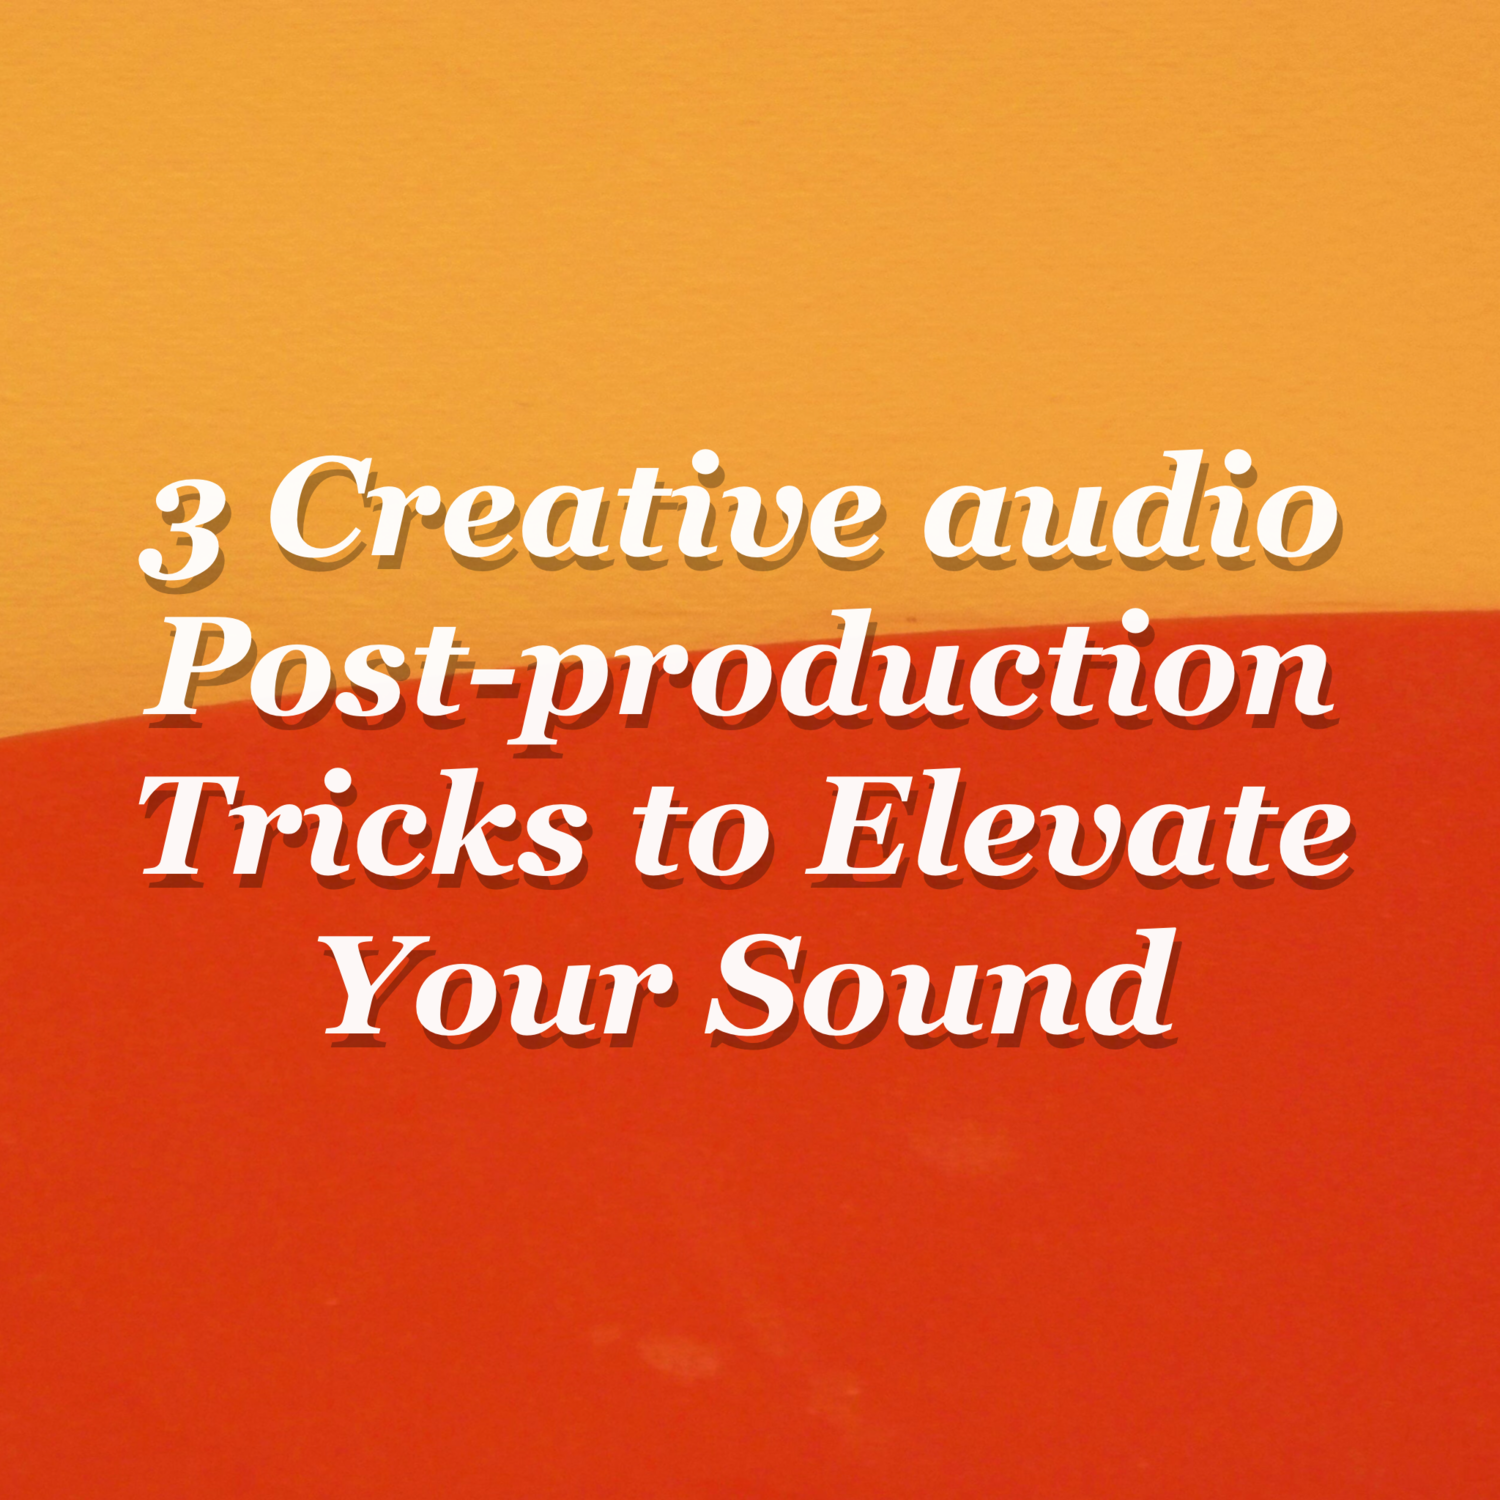 3 Creative Audio Post-Production Tricks to Elevate your Sound